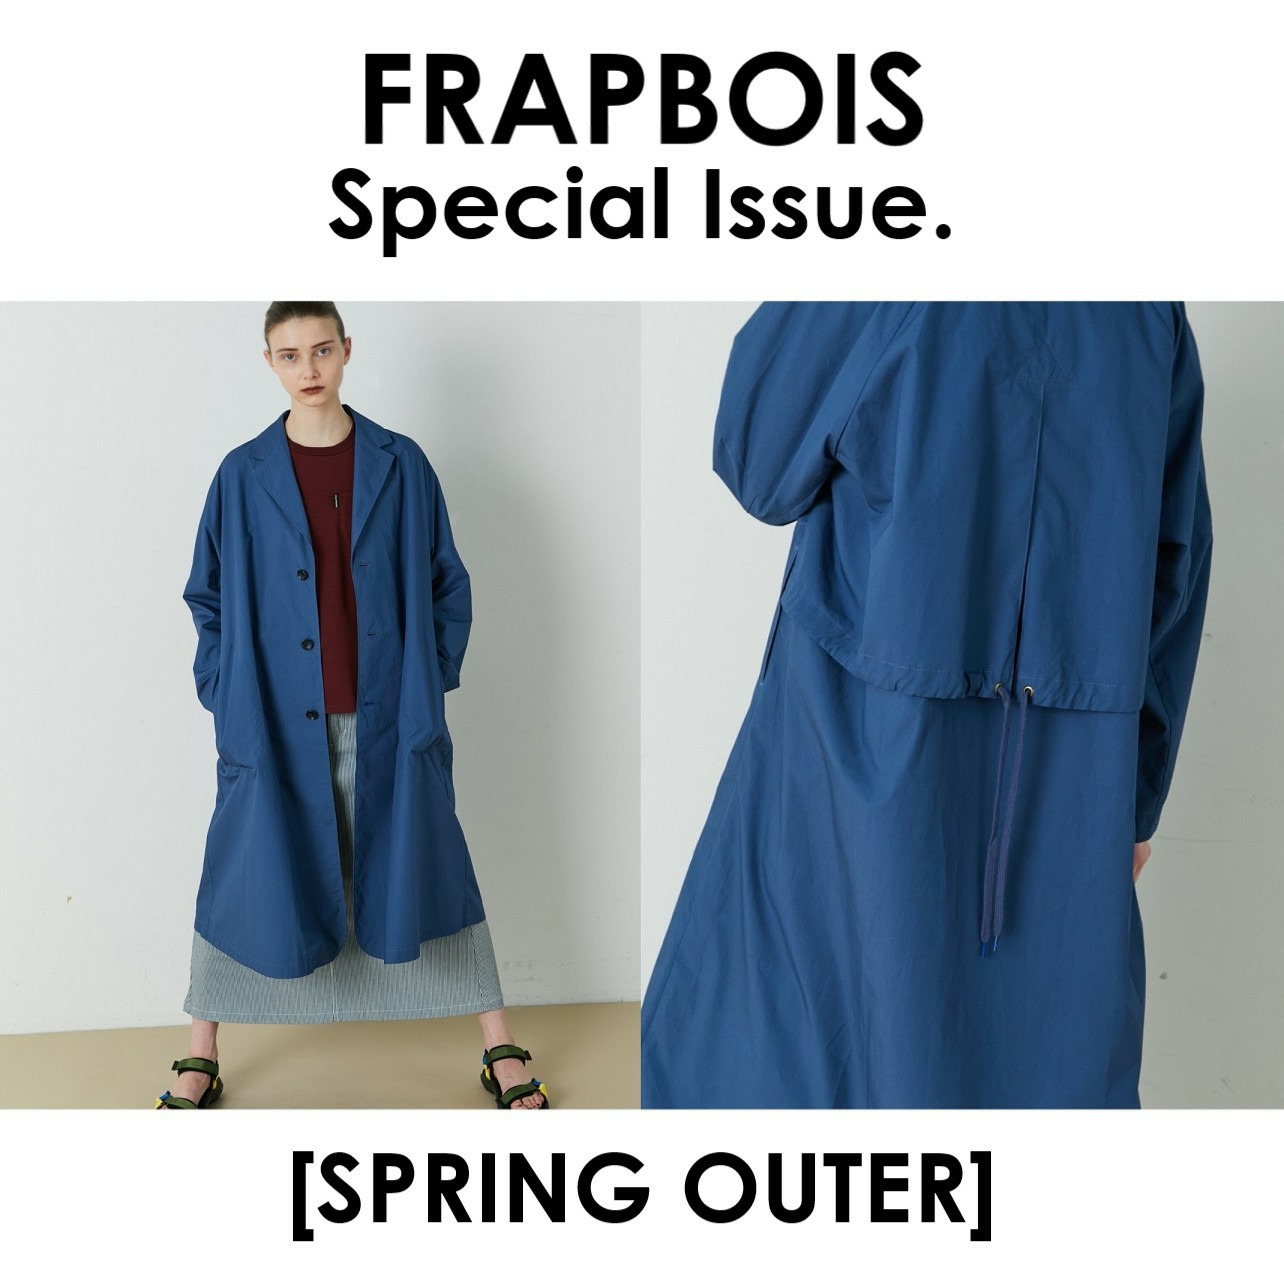 Special Issue.[SPRING OUTER]